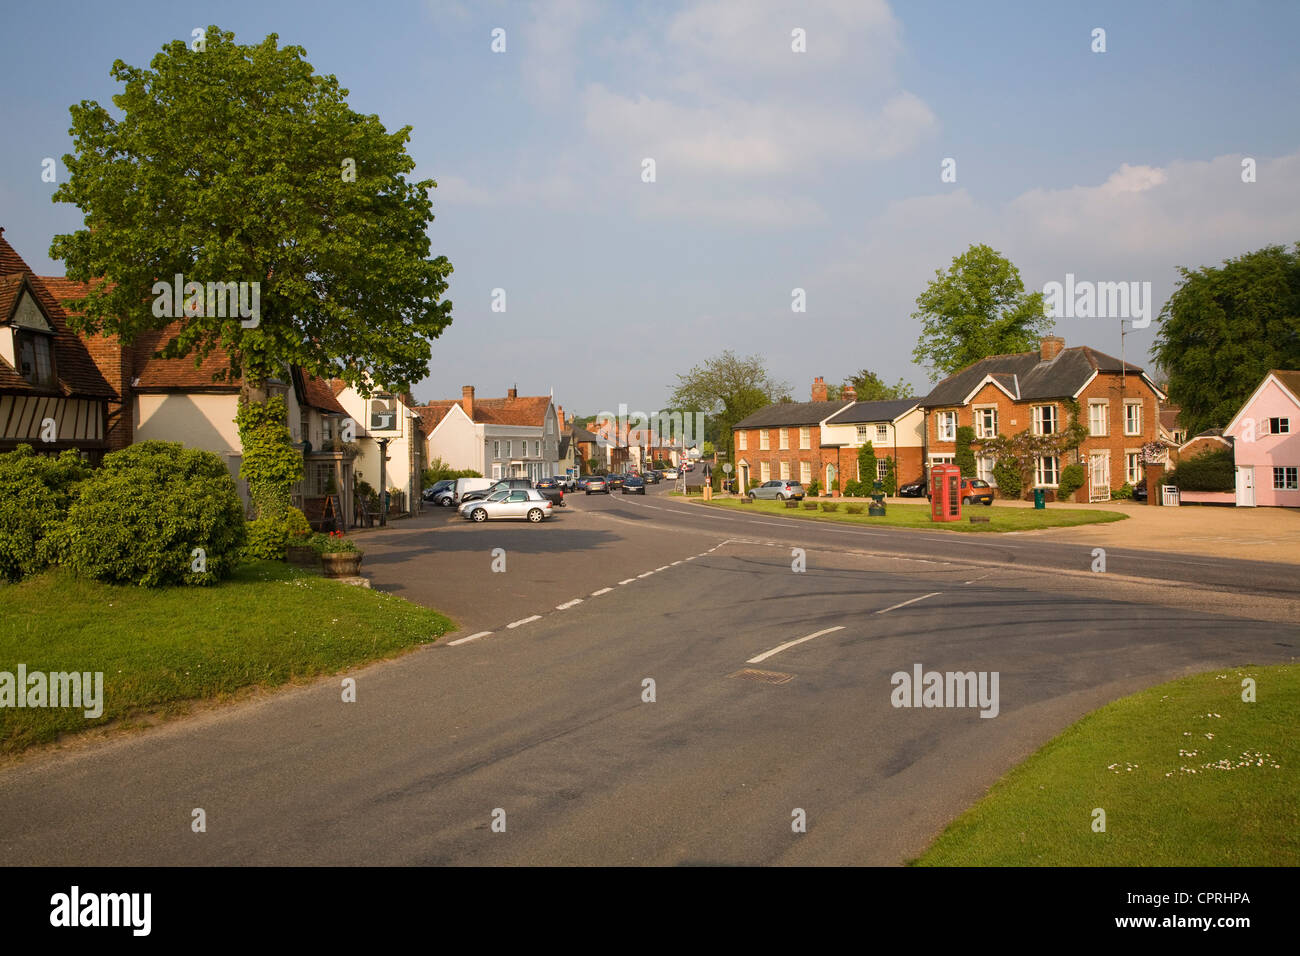 Road junction village houses Cavendish, Suffolk, England - Stock Image